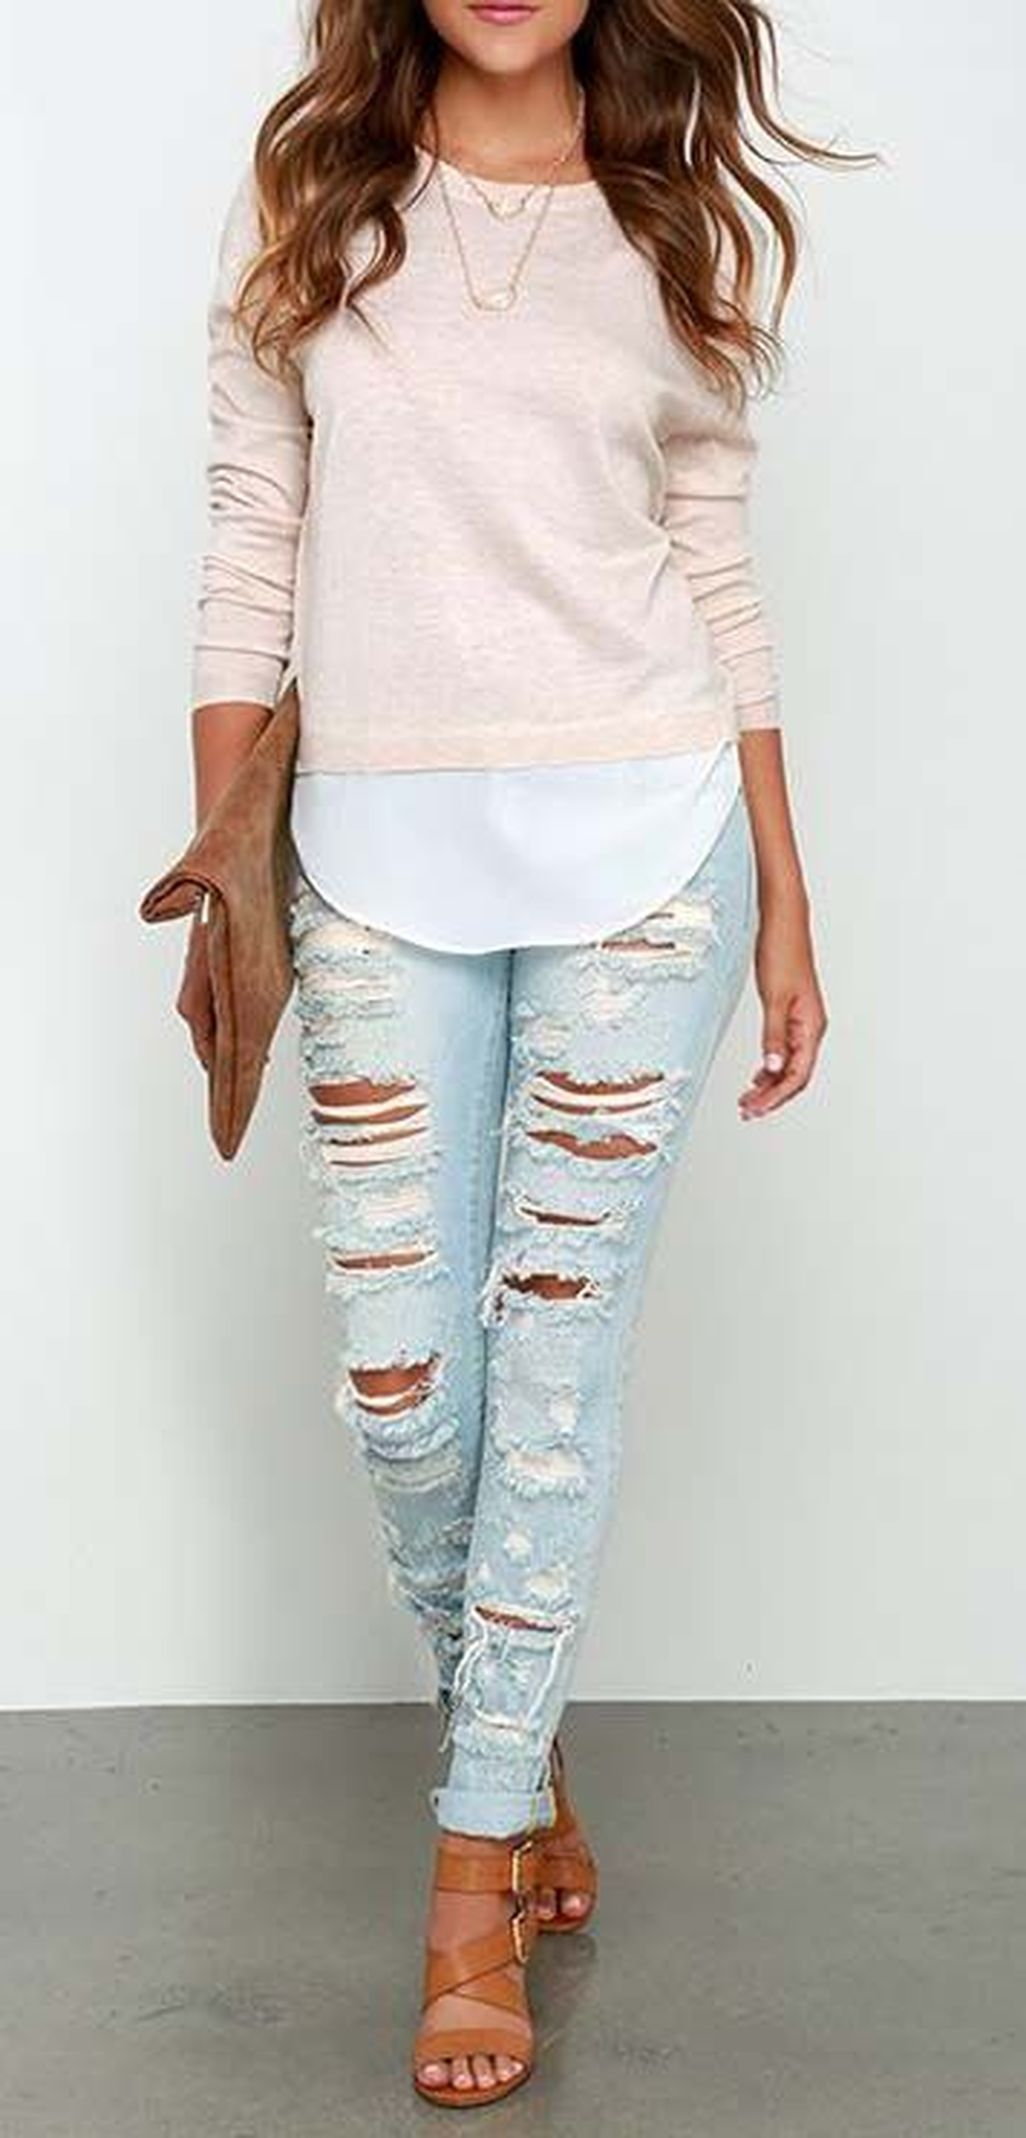 Watch 14 Comfortable Outfit Ideas for Early Spirng 2015 video